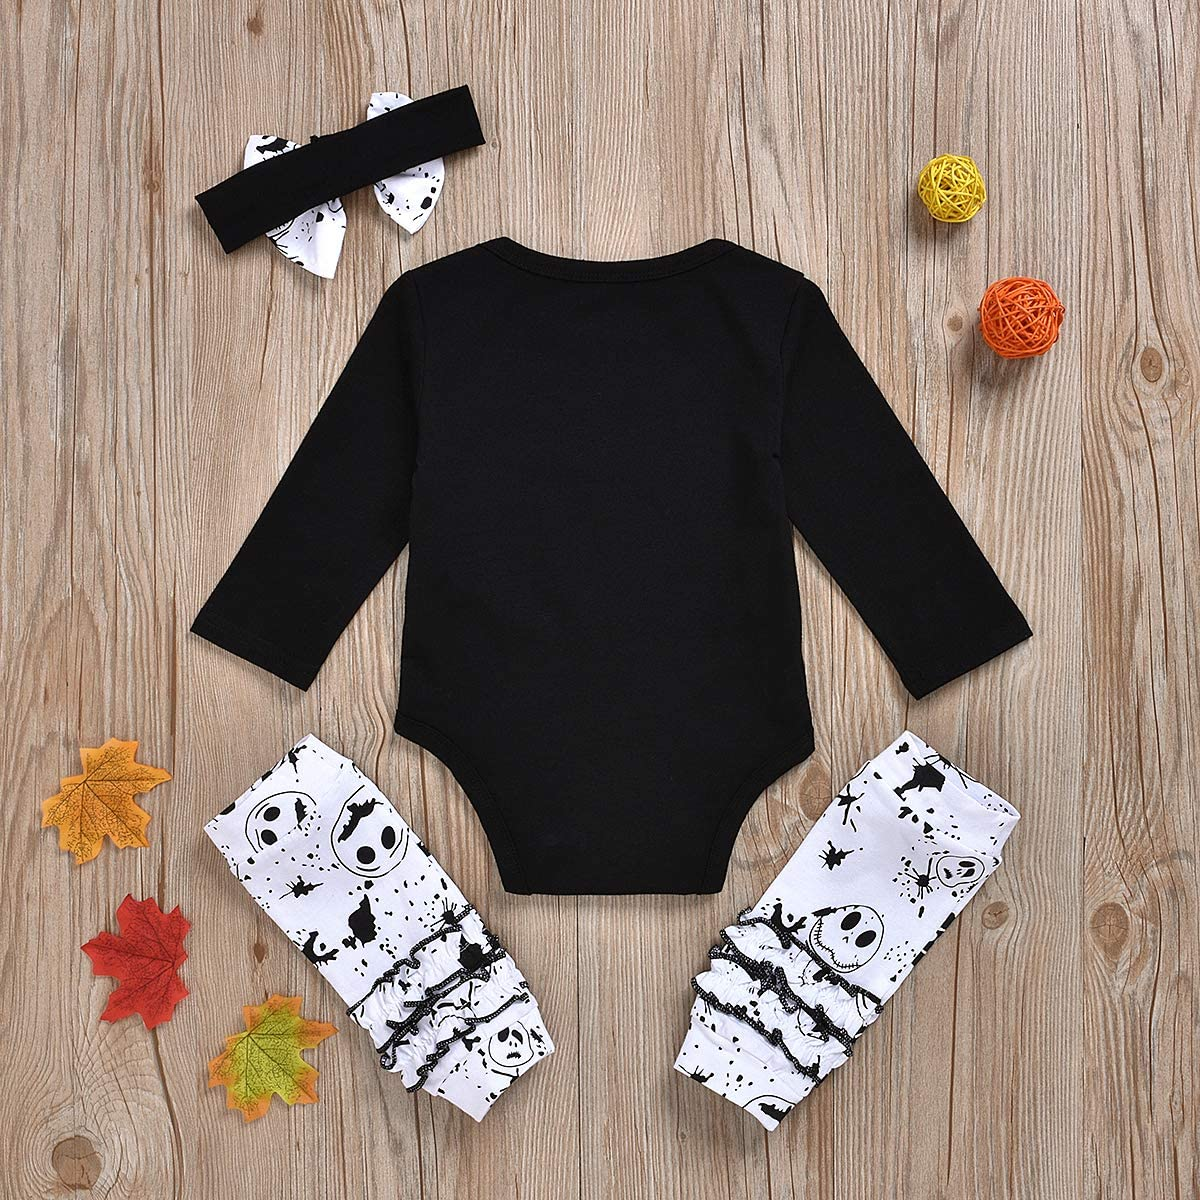 Skull Pants Nightmare Before Pajamas Claus Sets DaceStar 2PCs Outfits Newborn Toddler Baby Boy Girl Clothes Long Sleeve Letter Print T-Shirt